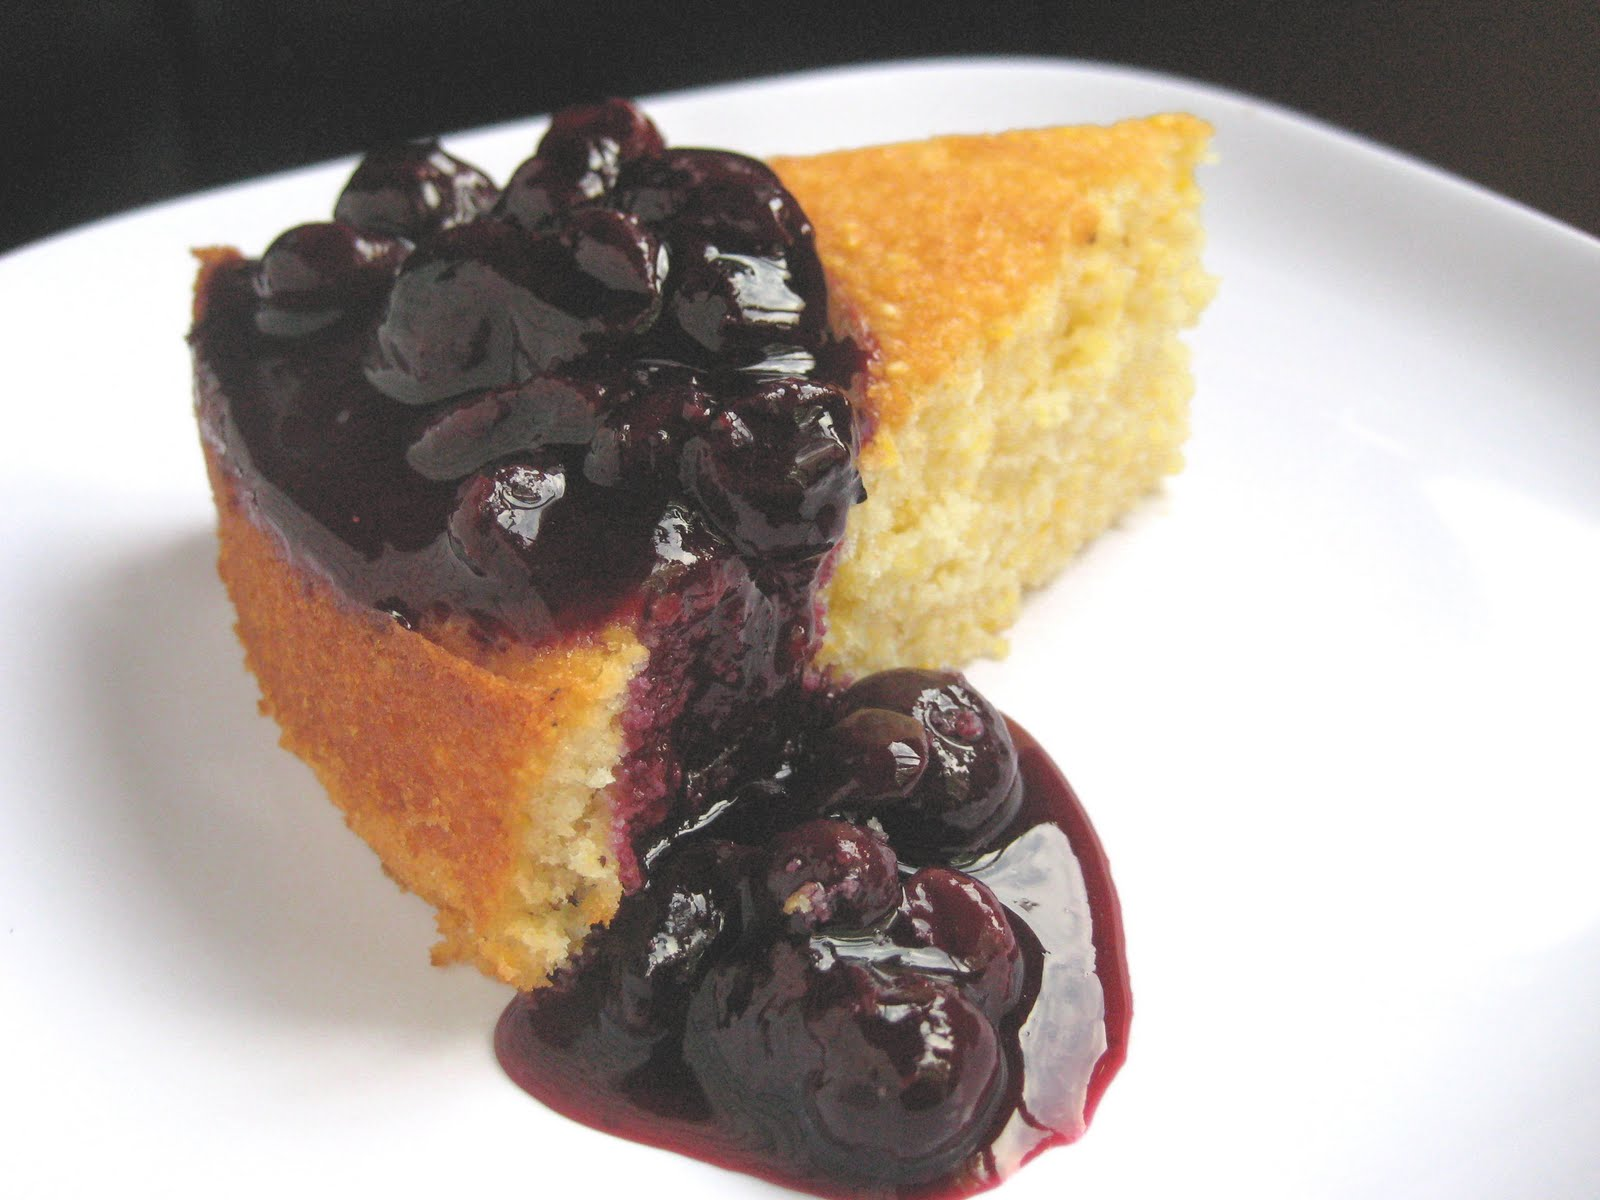 The Hedonistic Kitchen: Corncake with Blueberry Compote